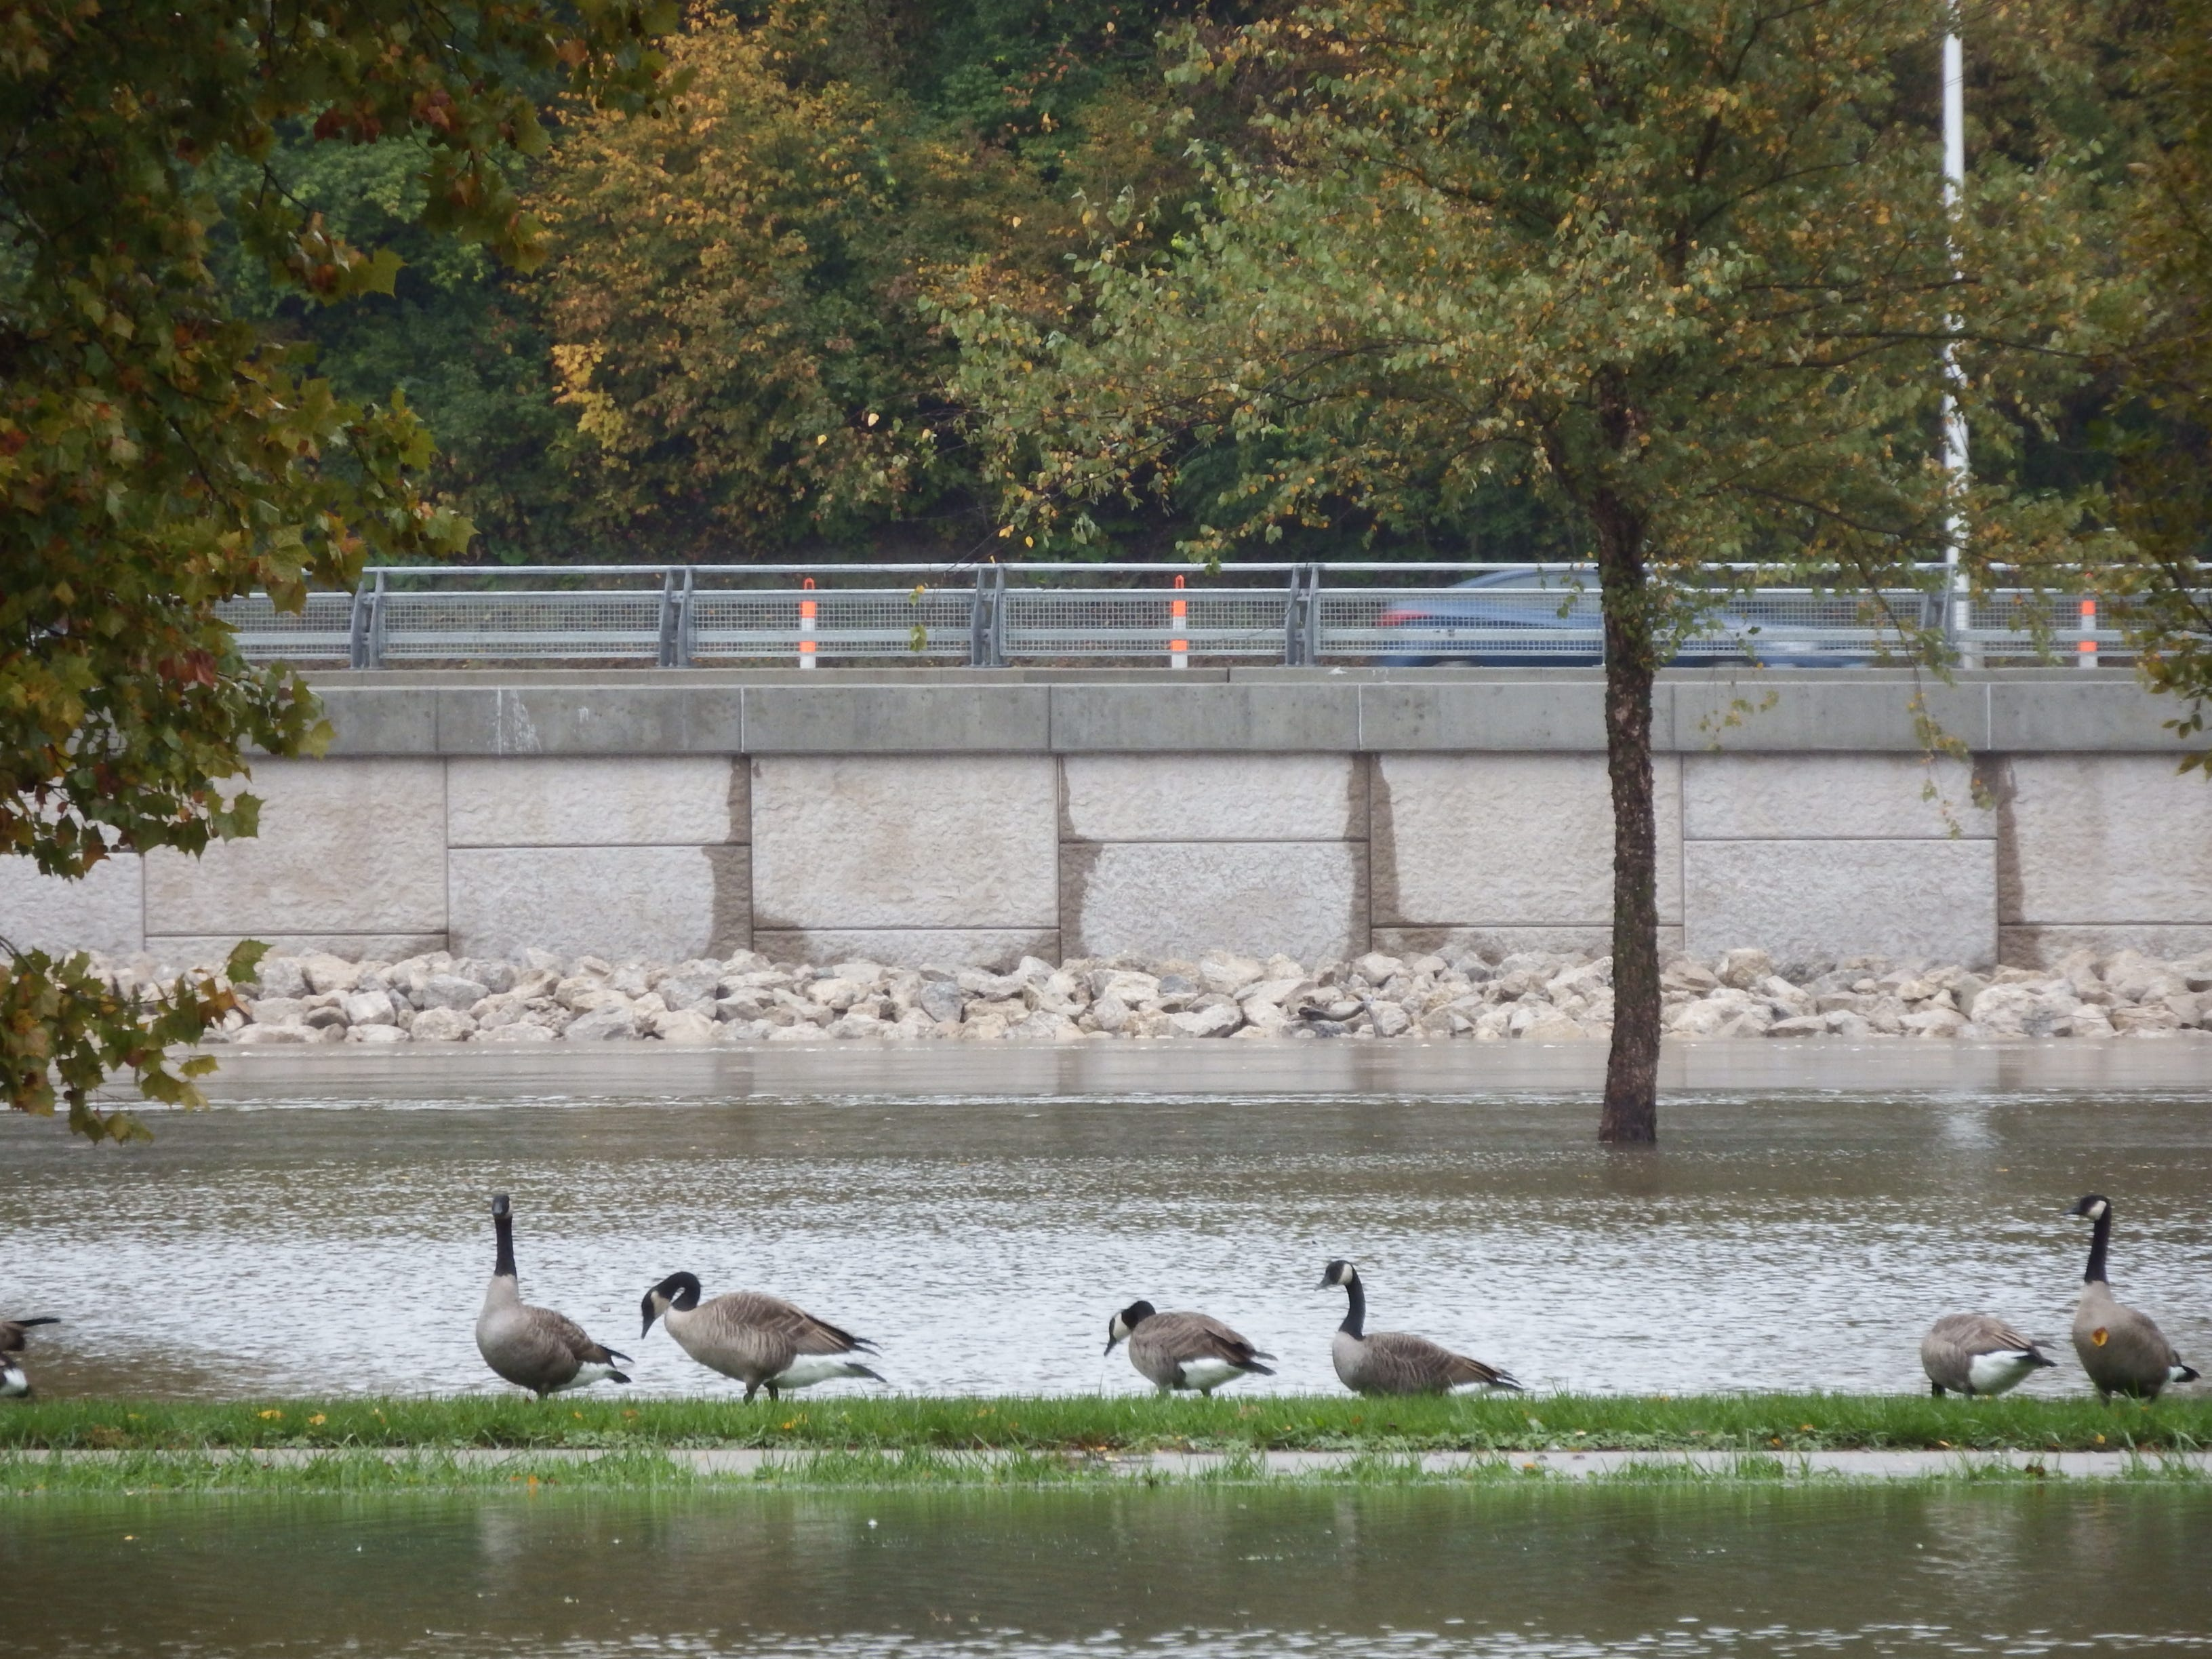 Geese don't mind the high water.